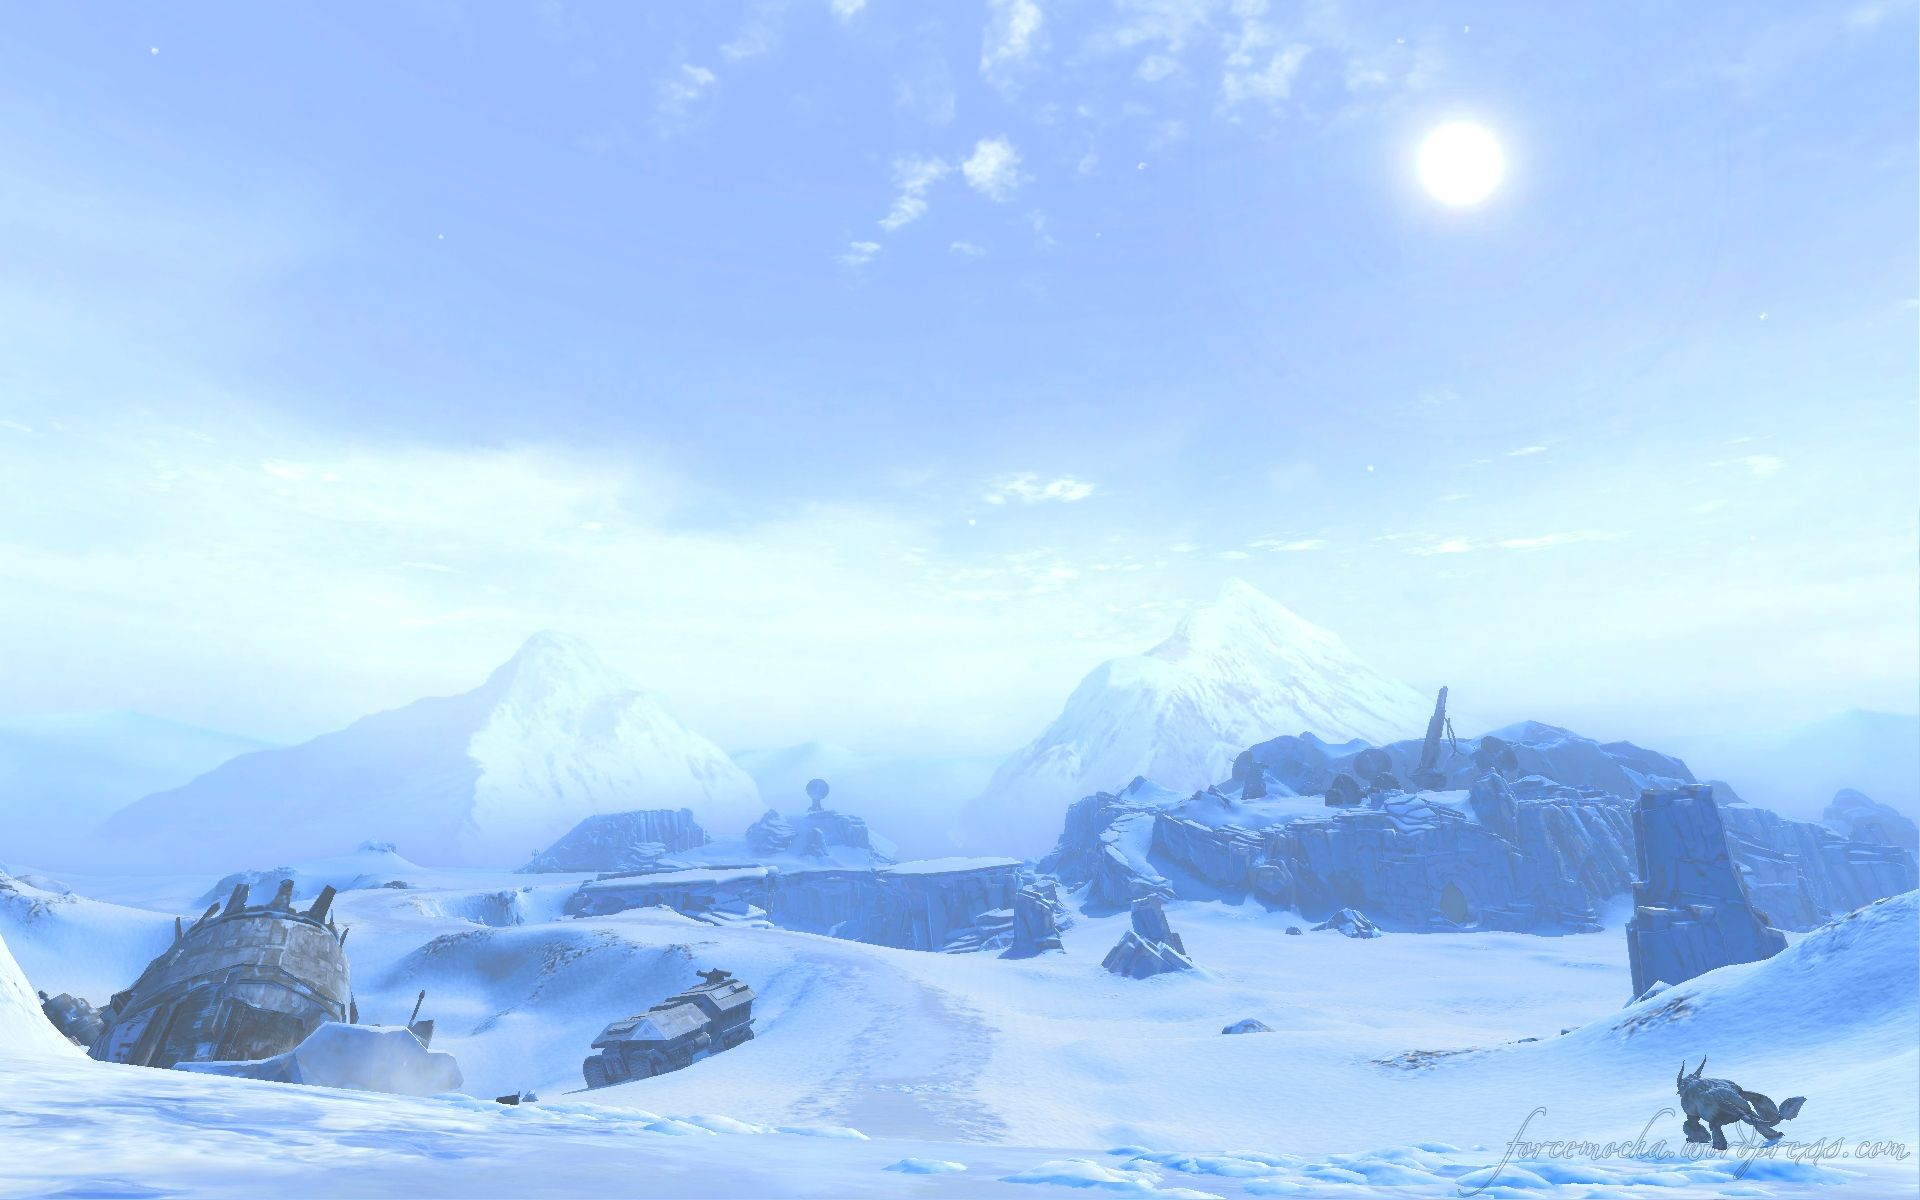 Hoth Wallpapers Top Free Hoth Backgrounds Wallpaperaccess